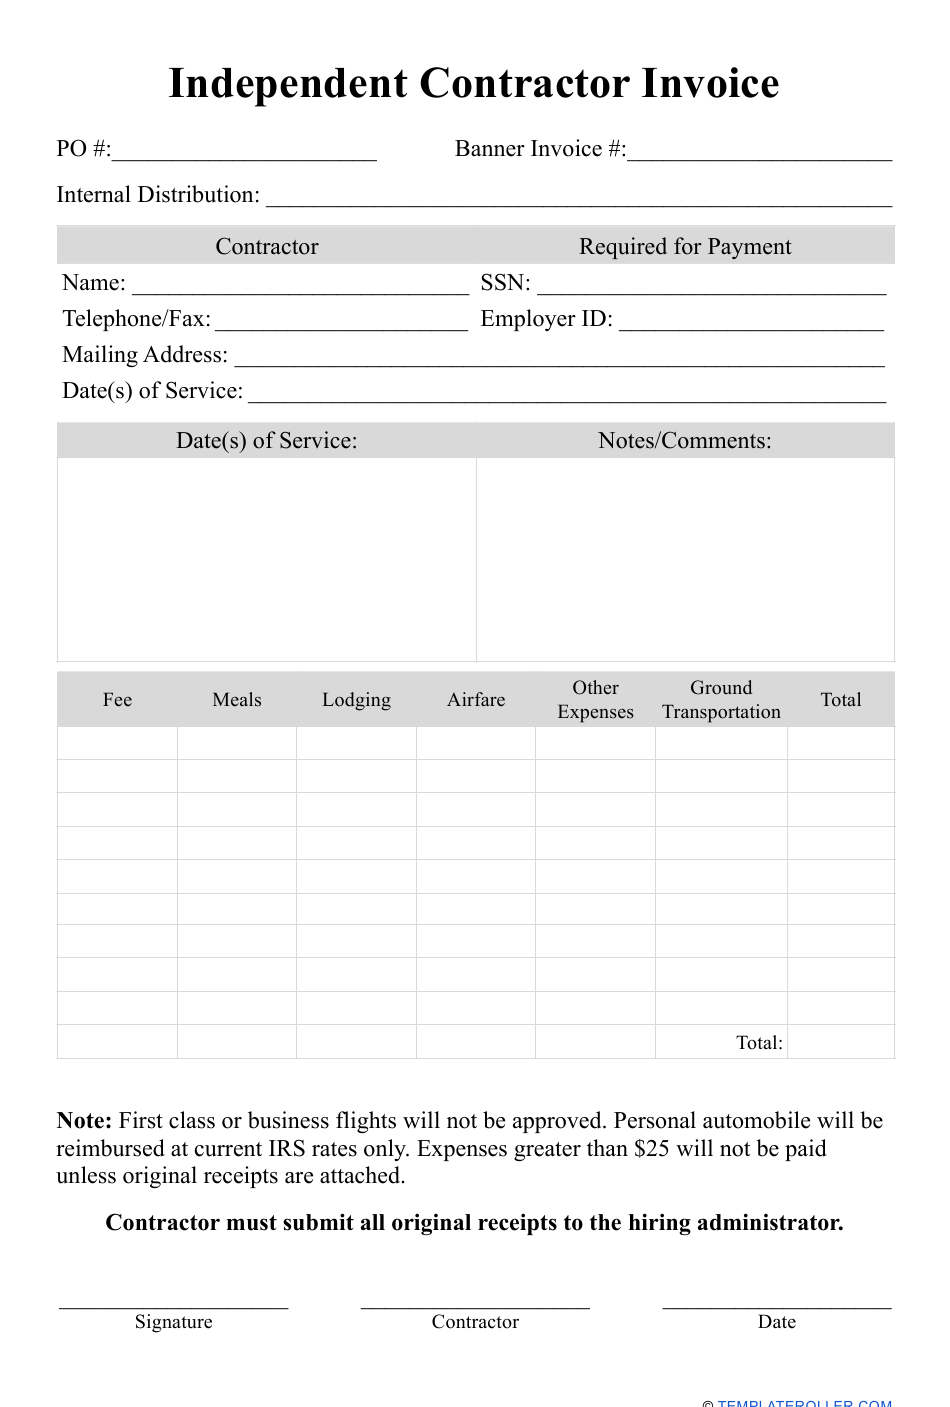 Independent Contractor Invoice Template Download Printable Pdf Templateroller